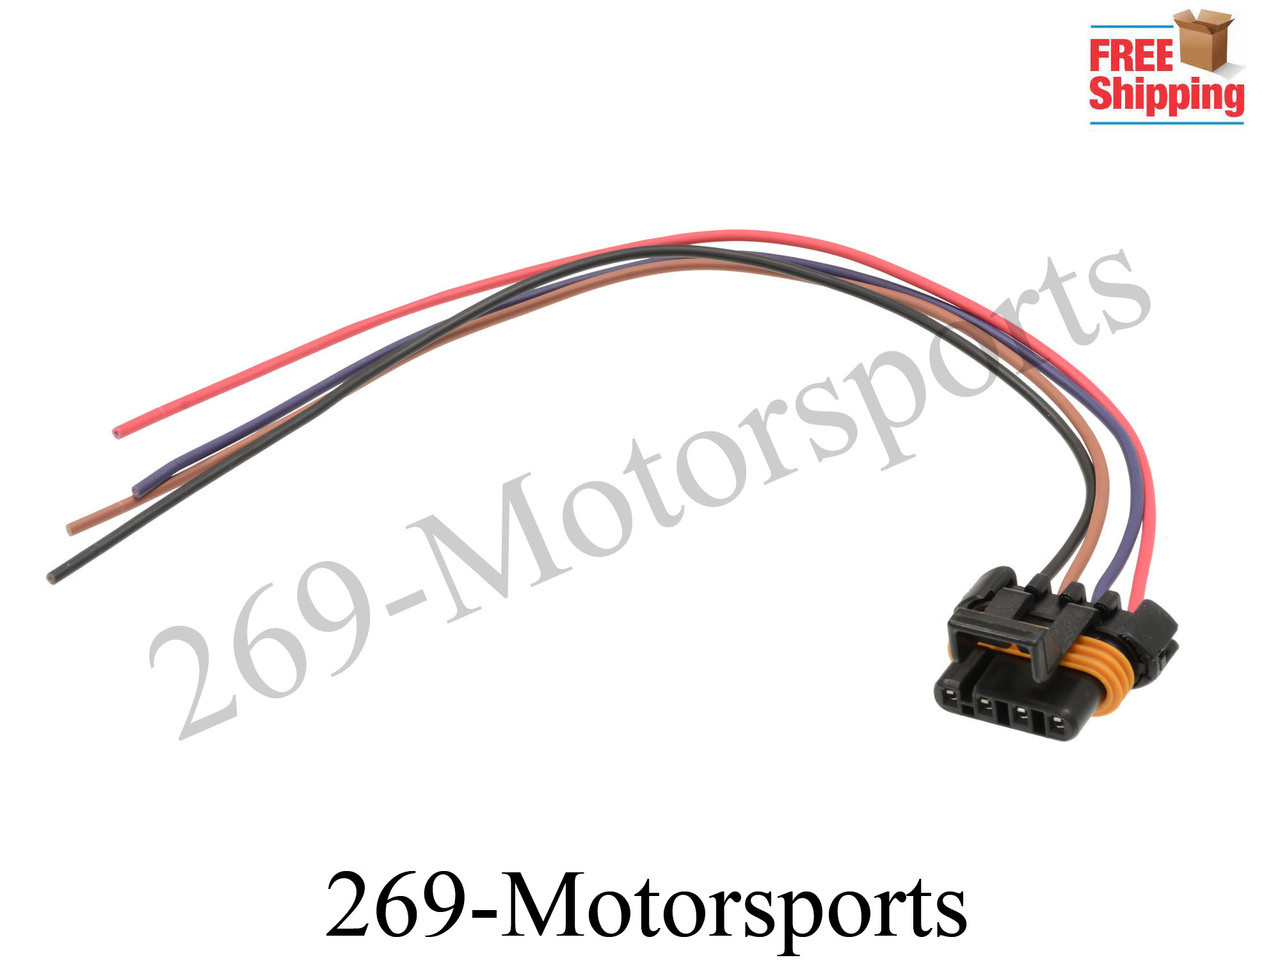 small resolution of o2 oxygen sensor wiring harness connector pigtail for gm camaro firebird ls1 lt1